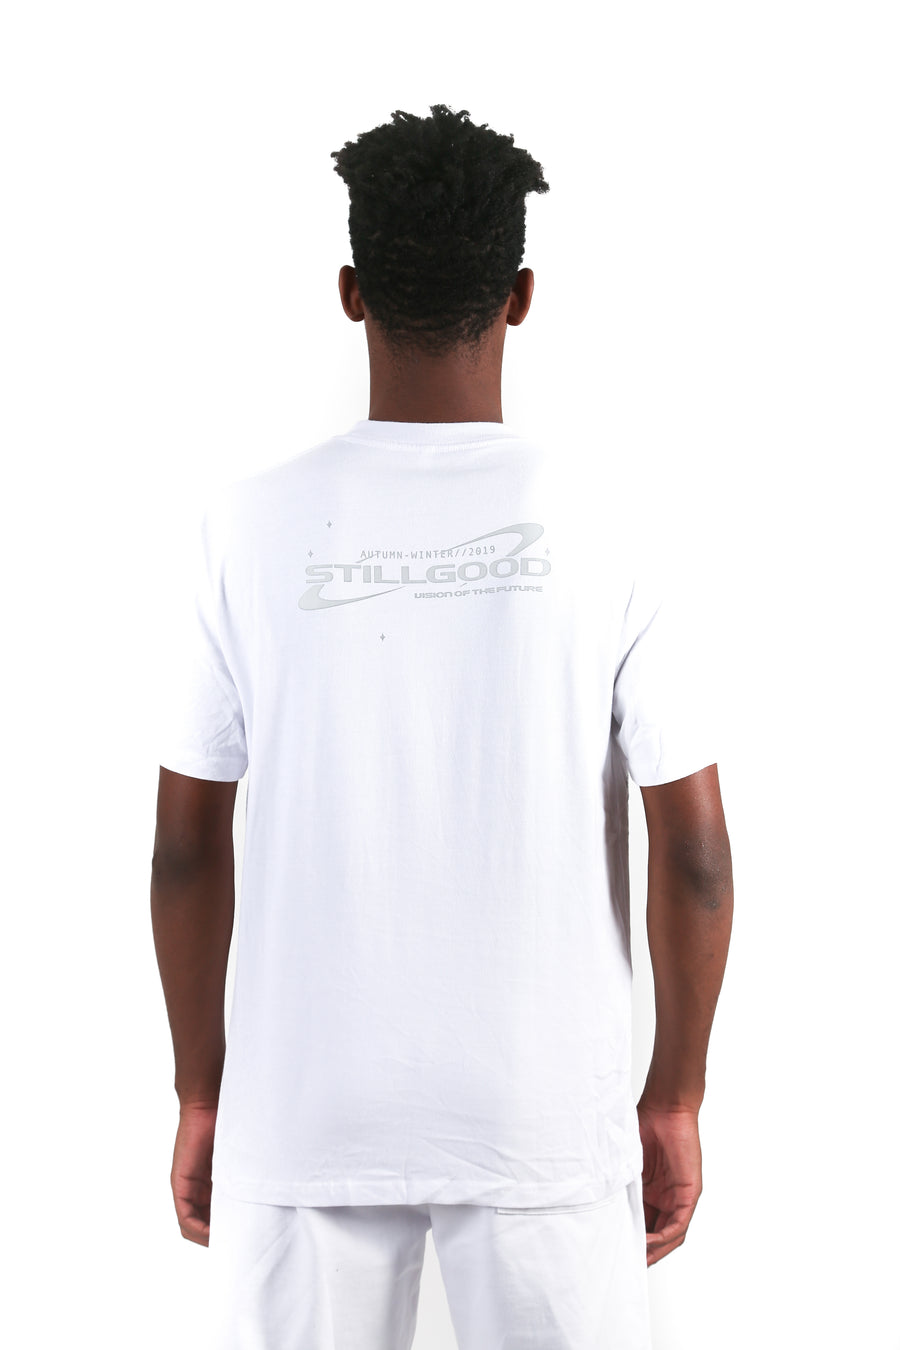 Galaxy Logo Tee | Still Good